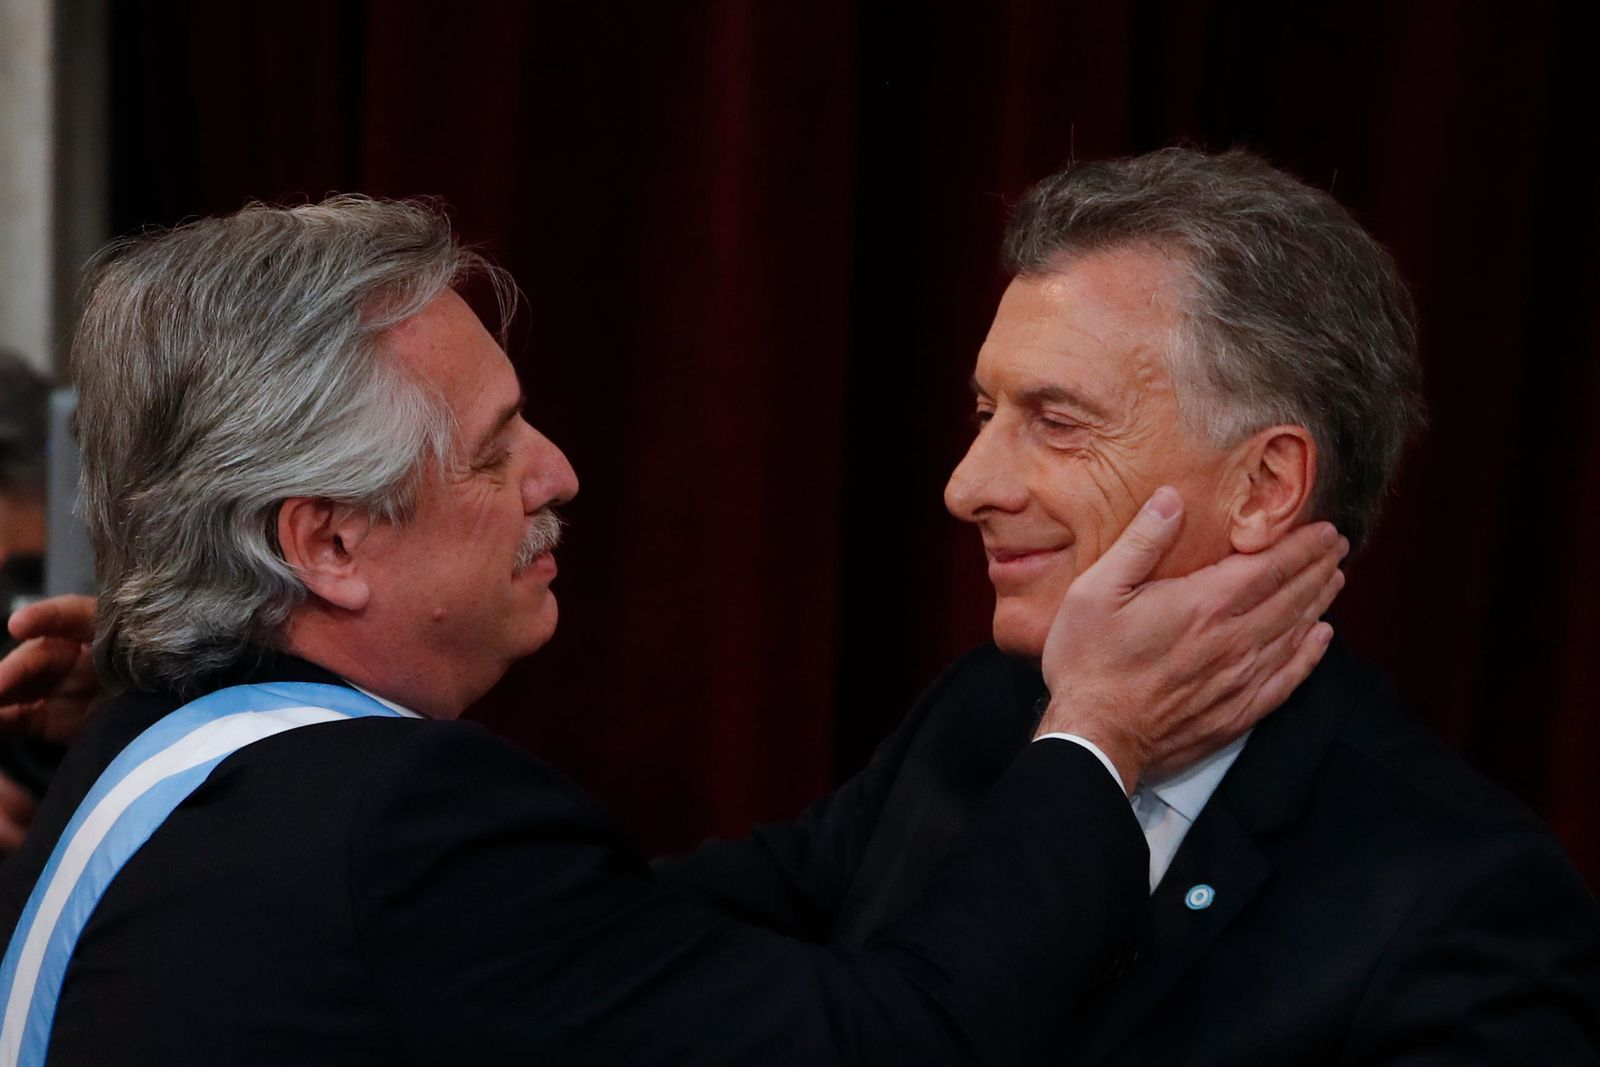 Argentina's new President Alberto Fernandez, left, greets outgoing president Mauricio Macri after taking the oath of office at the Congress in Buenos Aires, Argentina, Tuesday, Dec. 10, 2019. (AP Photo/Natacha Pisarenko)